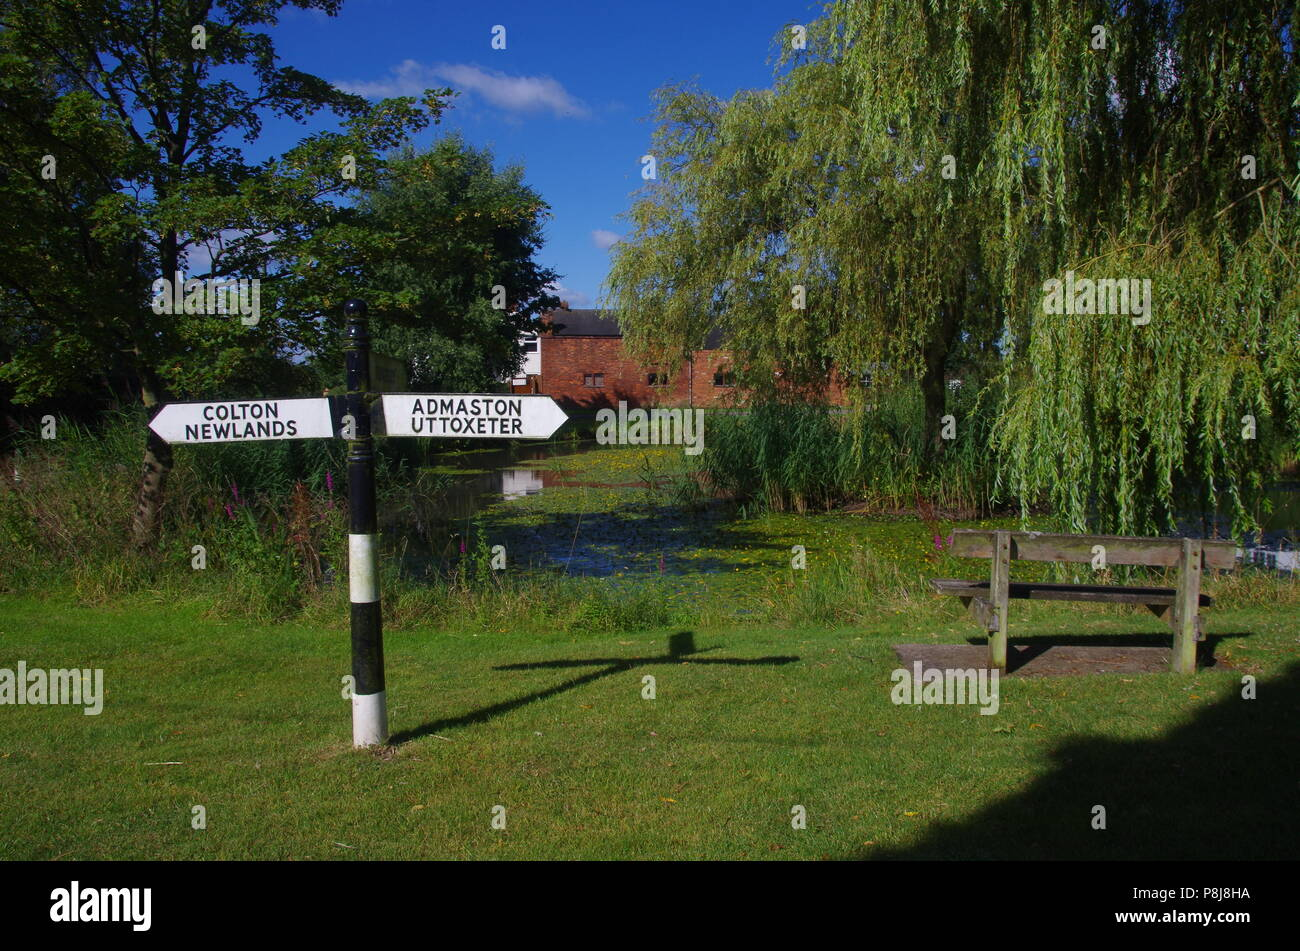 Stockwell Heath.Cross Britain Way. John o' groats (Duncansby head) to lands end. End to end trail. England. UK - Stock Image